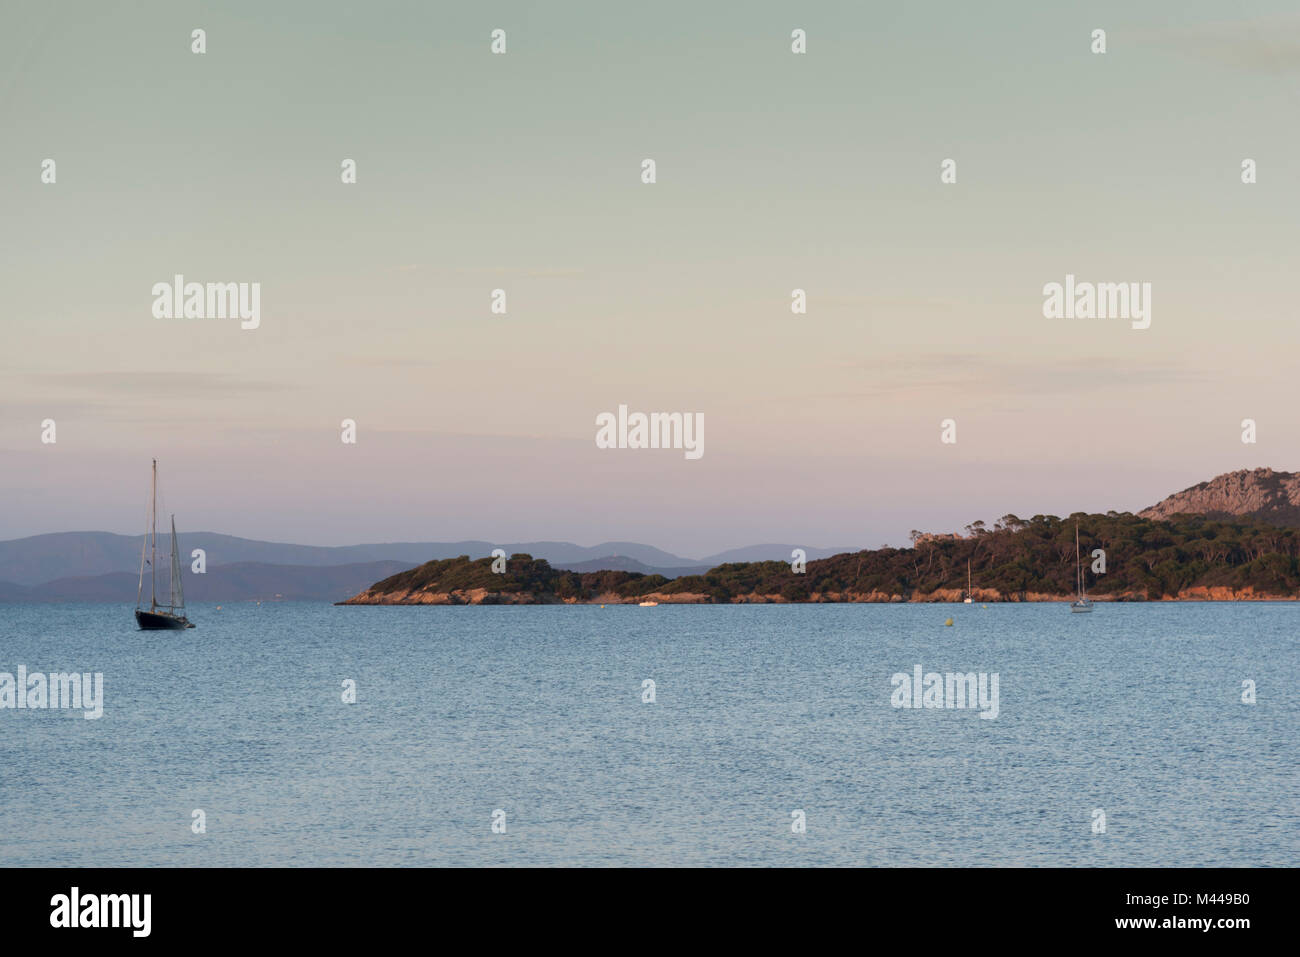 View of coast and anchored yacht, Porquerolles, Provence-Alpes-Cote d'Azur - Stock Image